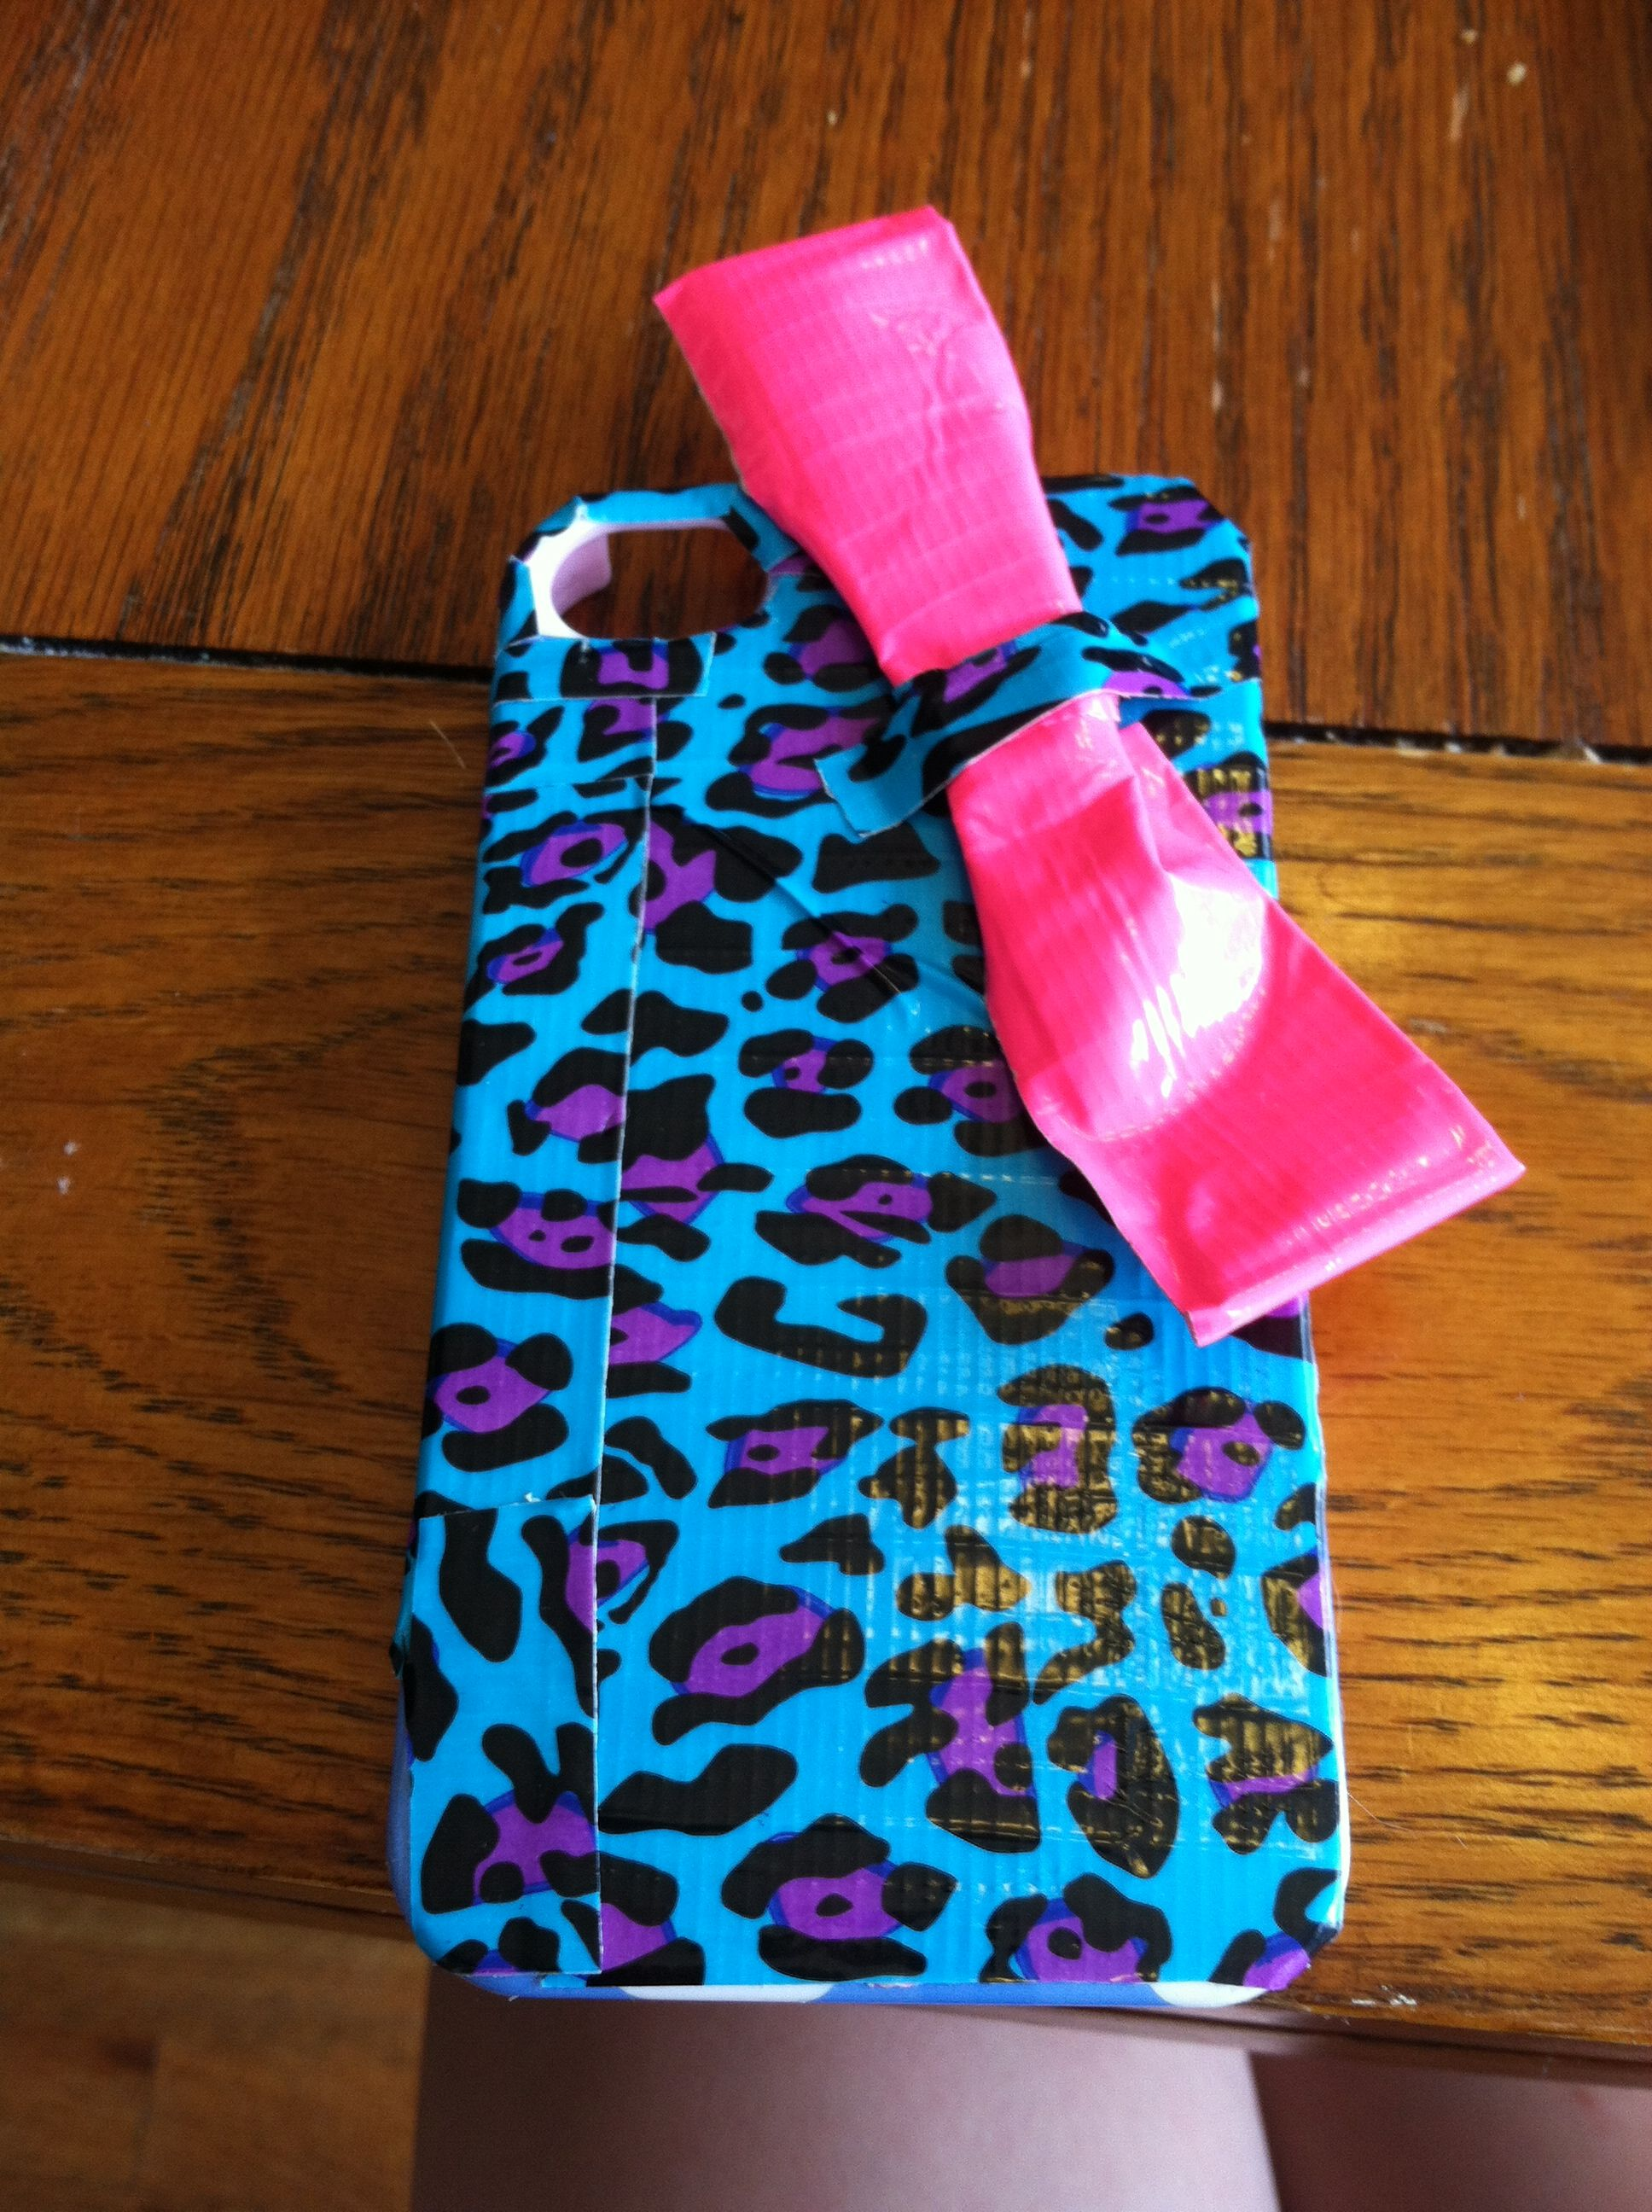 Fun homemade phone case with duct tape | Phone cases | Pinterest ...